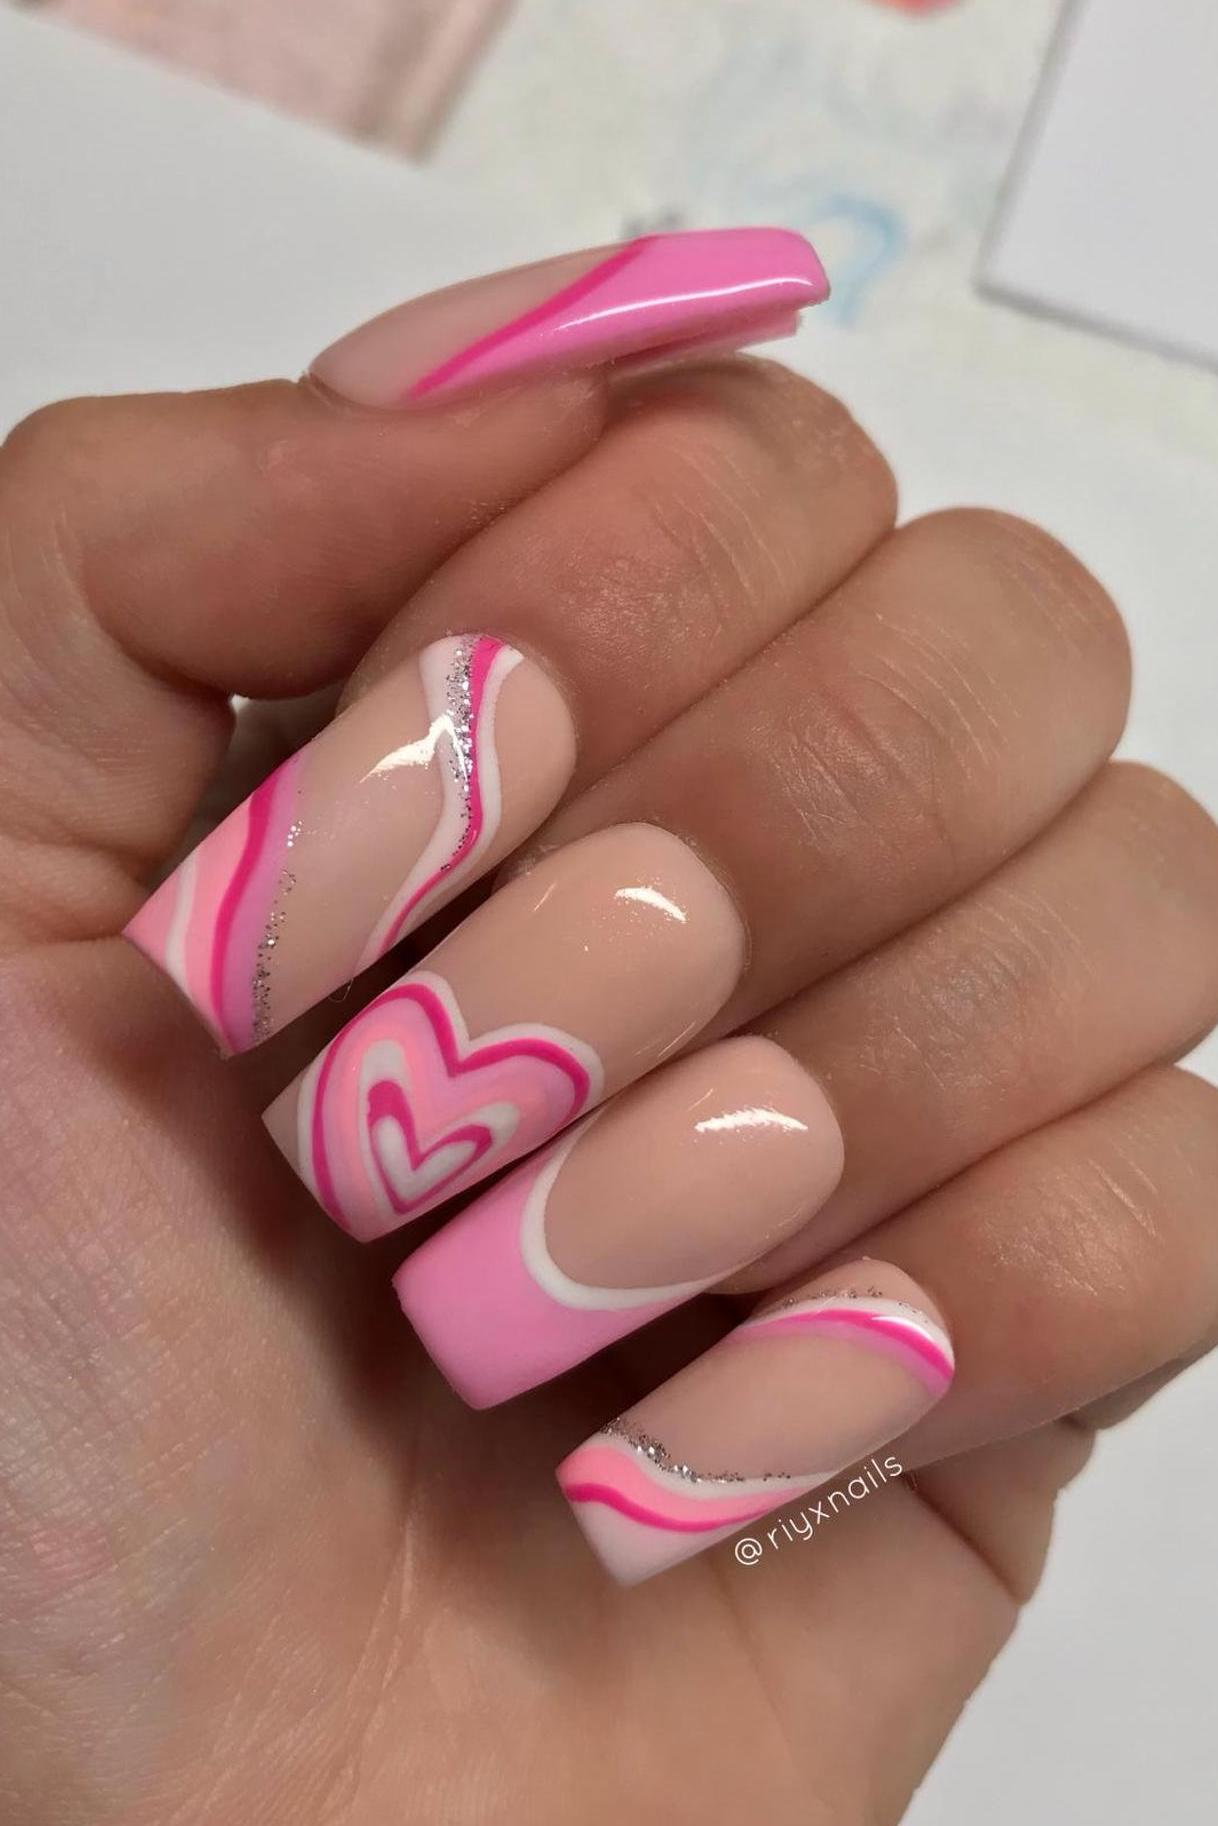 90s inspired pink heart nails with swirls